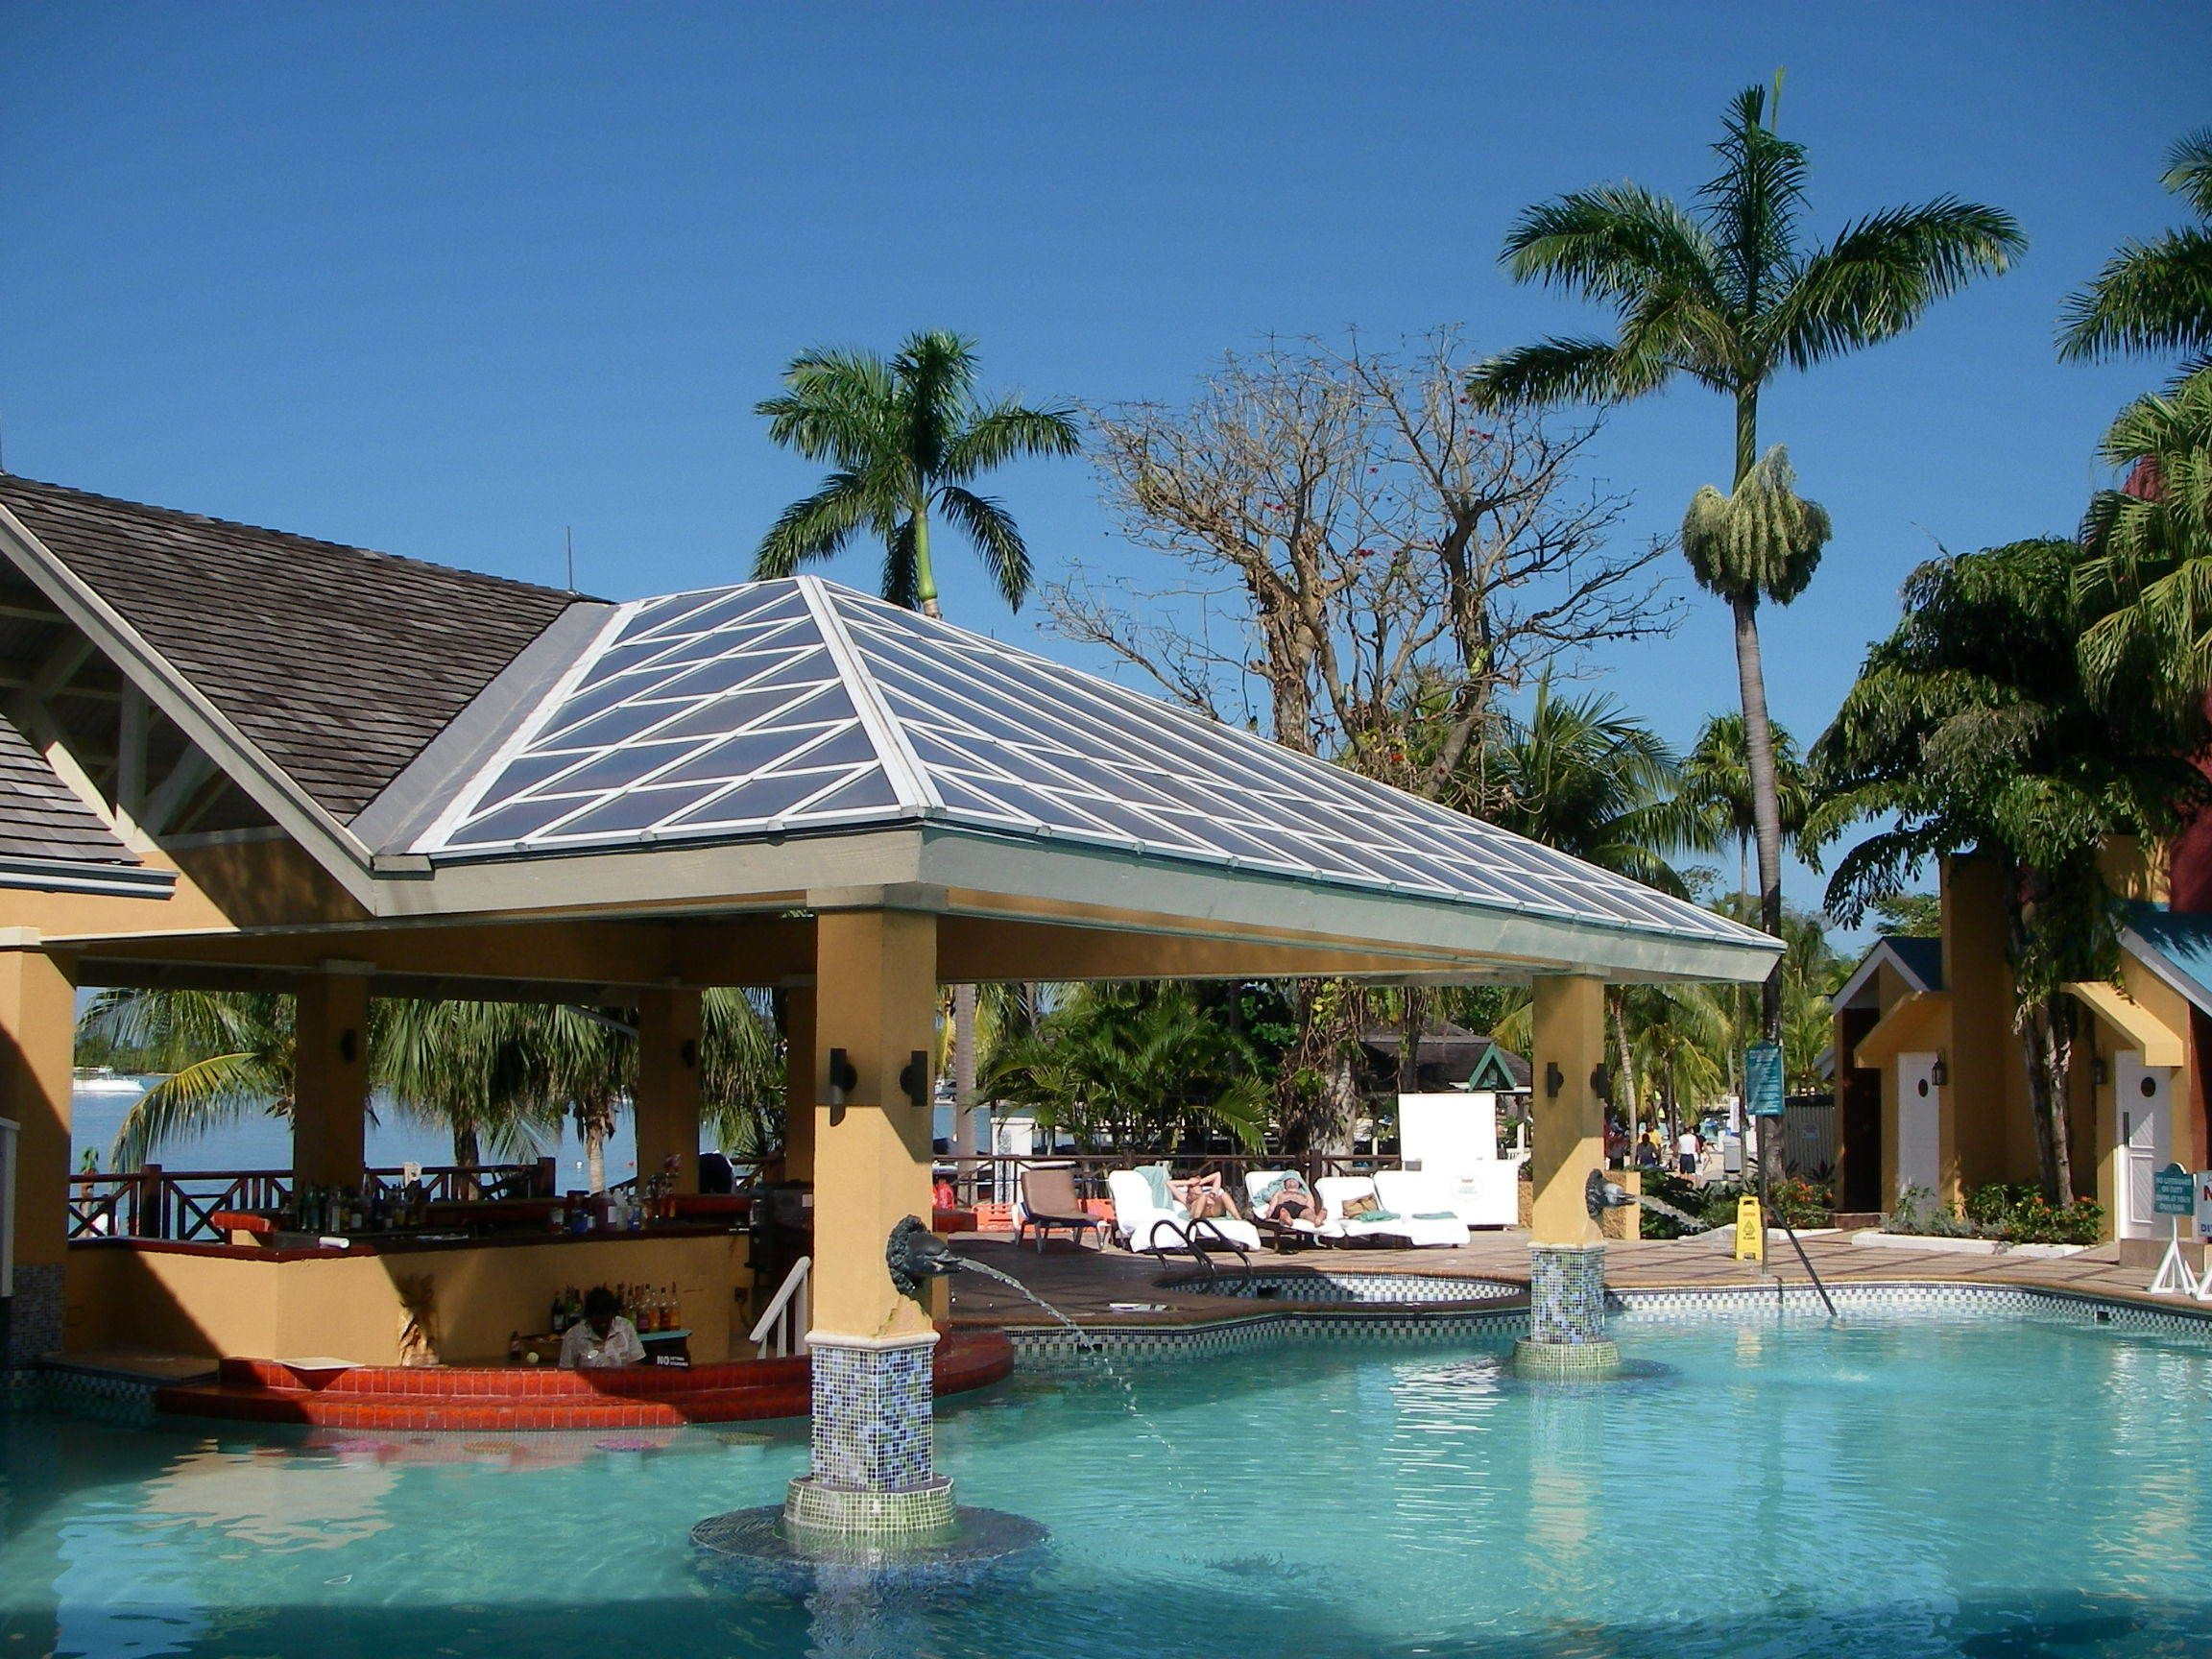 While Sandals is cool Couples Resorts RULE If you can go